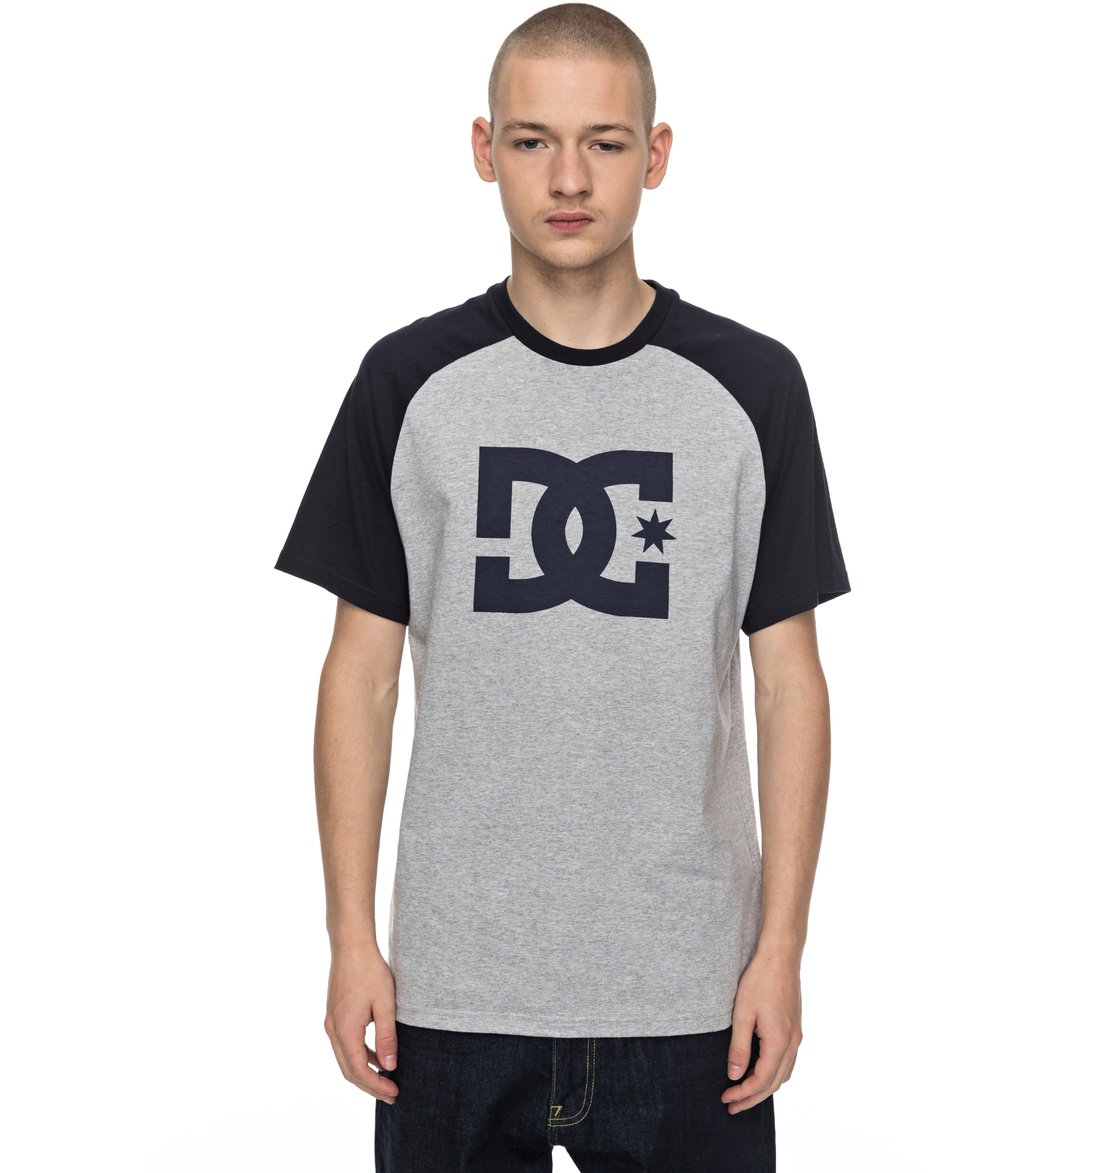 8646fc7d3c8b 0 Star Raglan - T-Shirt for Men EDYZT03707 DC Shoes